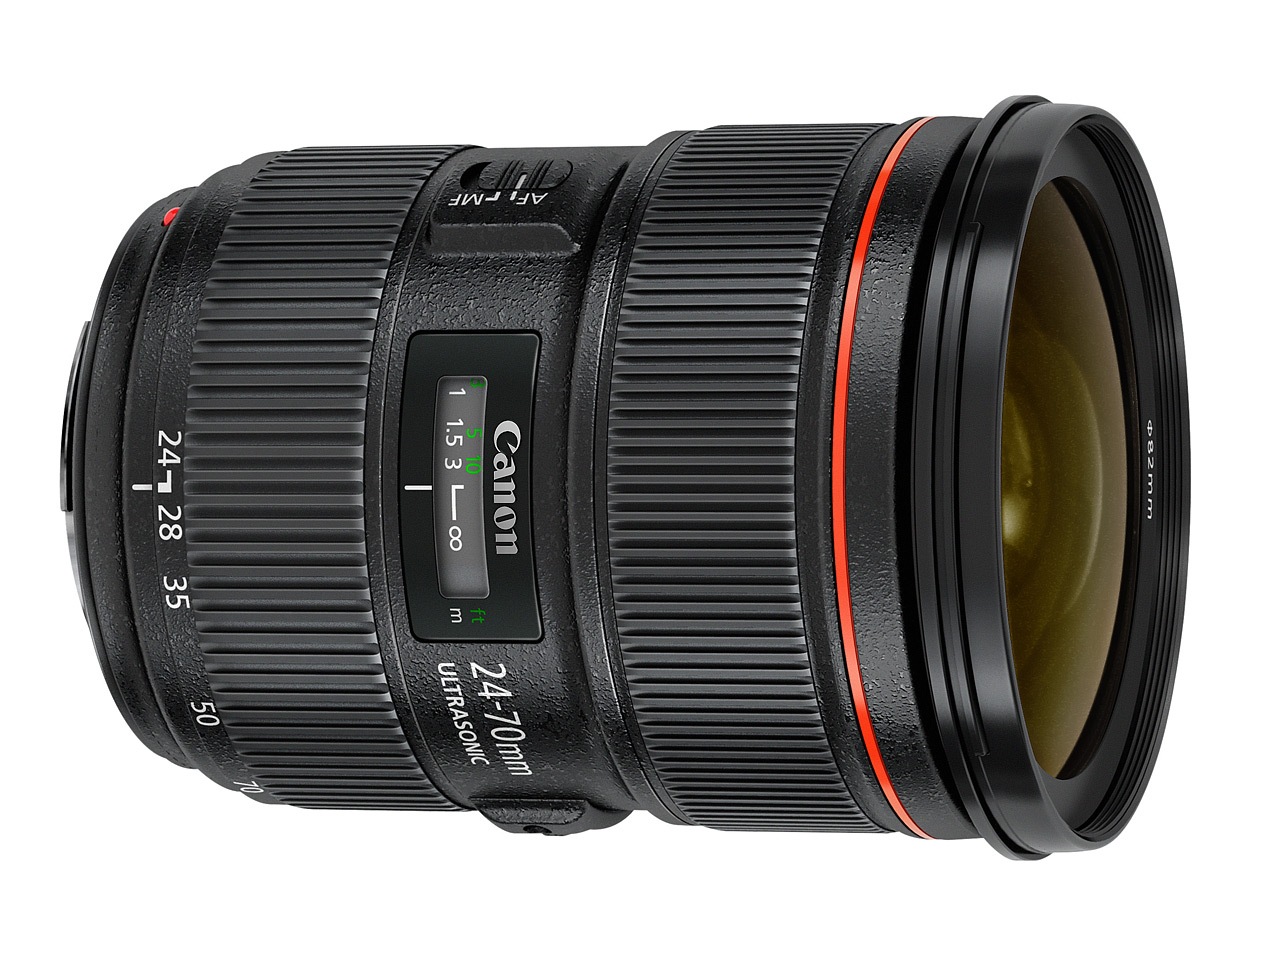 Canon renews full-frame lenses with 24-70mm F2.8 II and stabilized ...